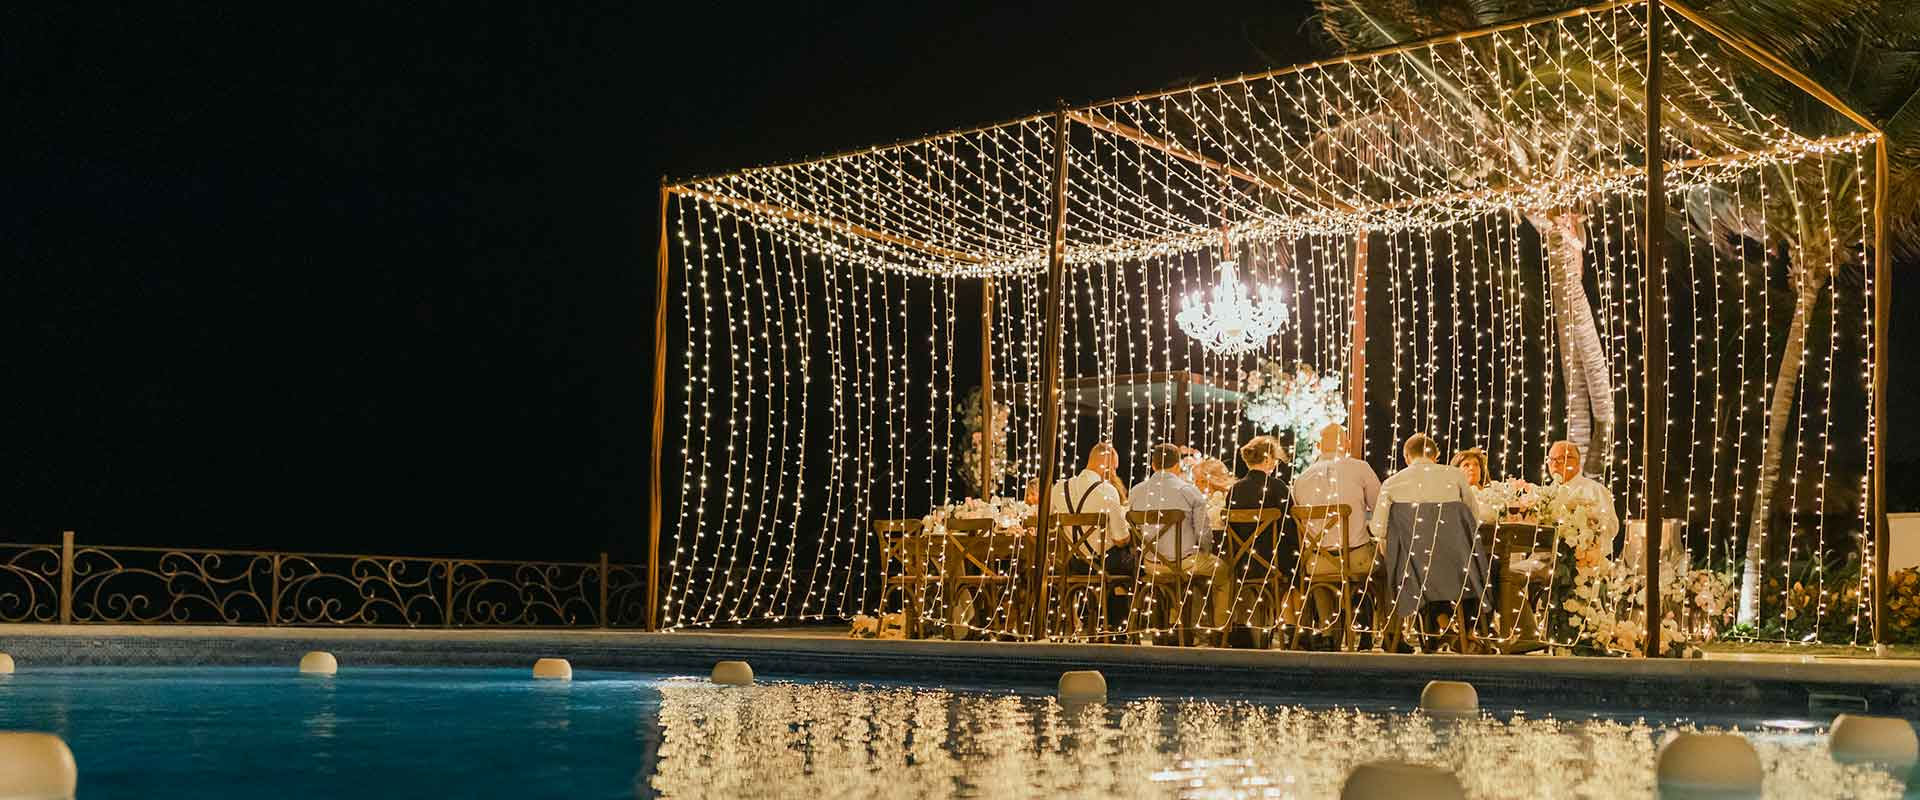 wedding-services-1920x800